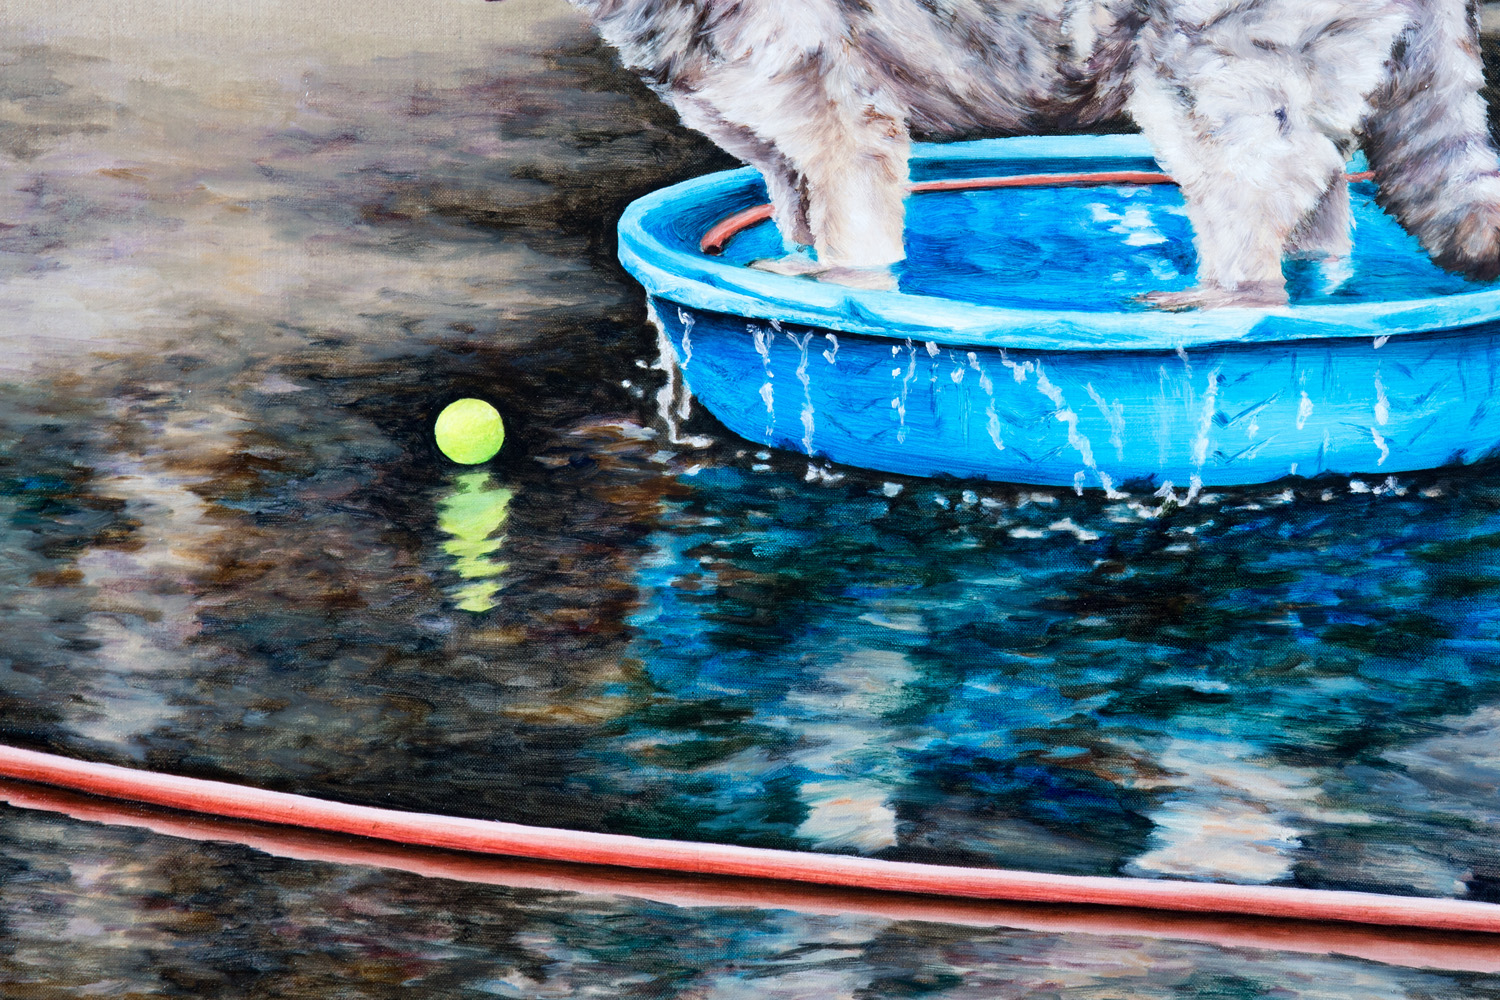 Kevin Chin, Tub Time (detail), 2016, oil on linen, 137 x 97 cm